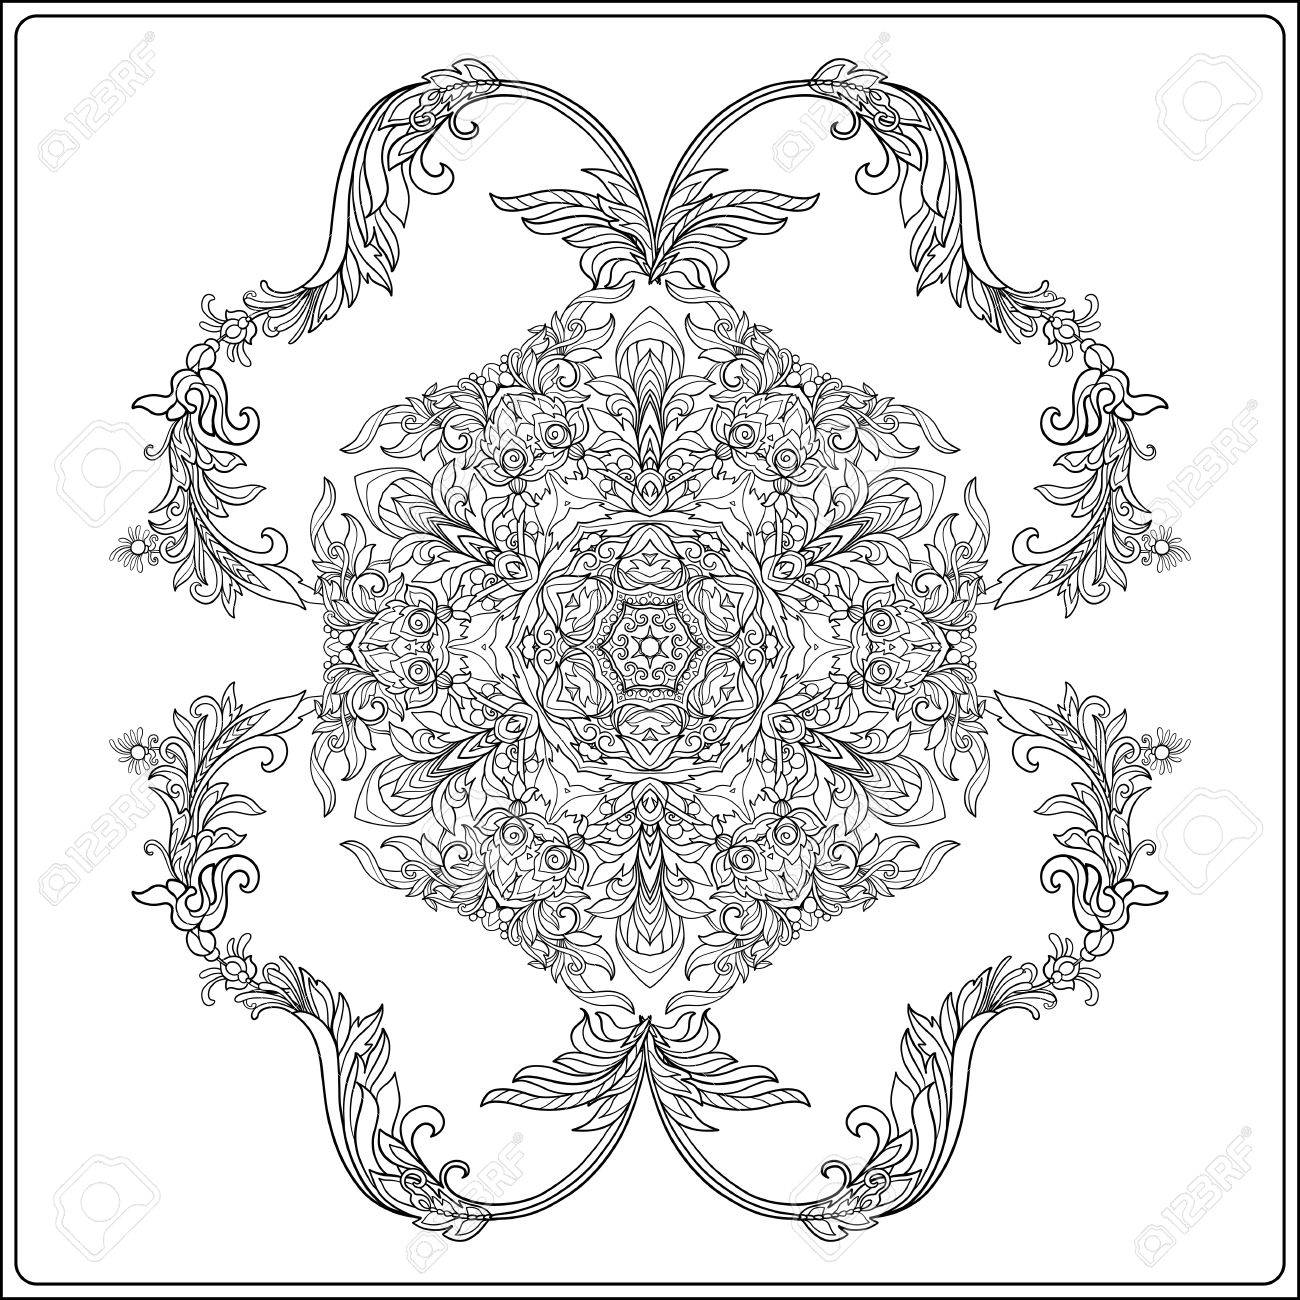 1300x1300 Medieval Floral Royal Pattern. Decorative Symmetry Arabesque